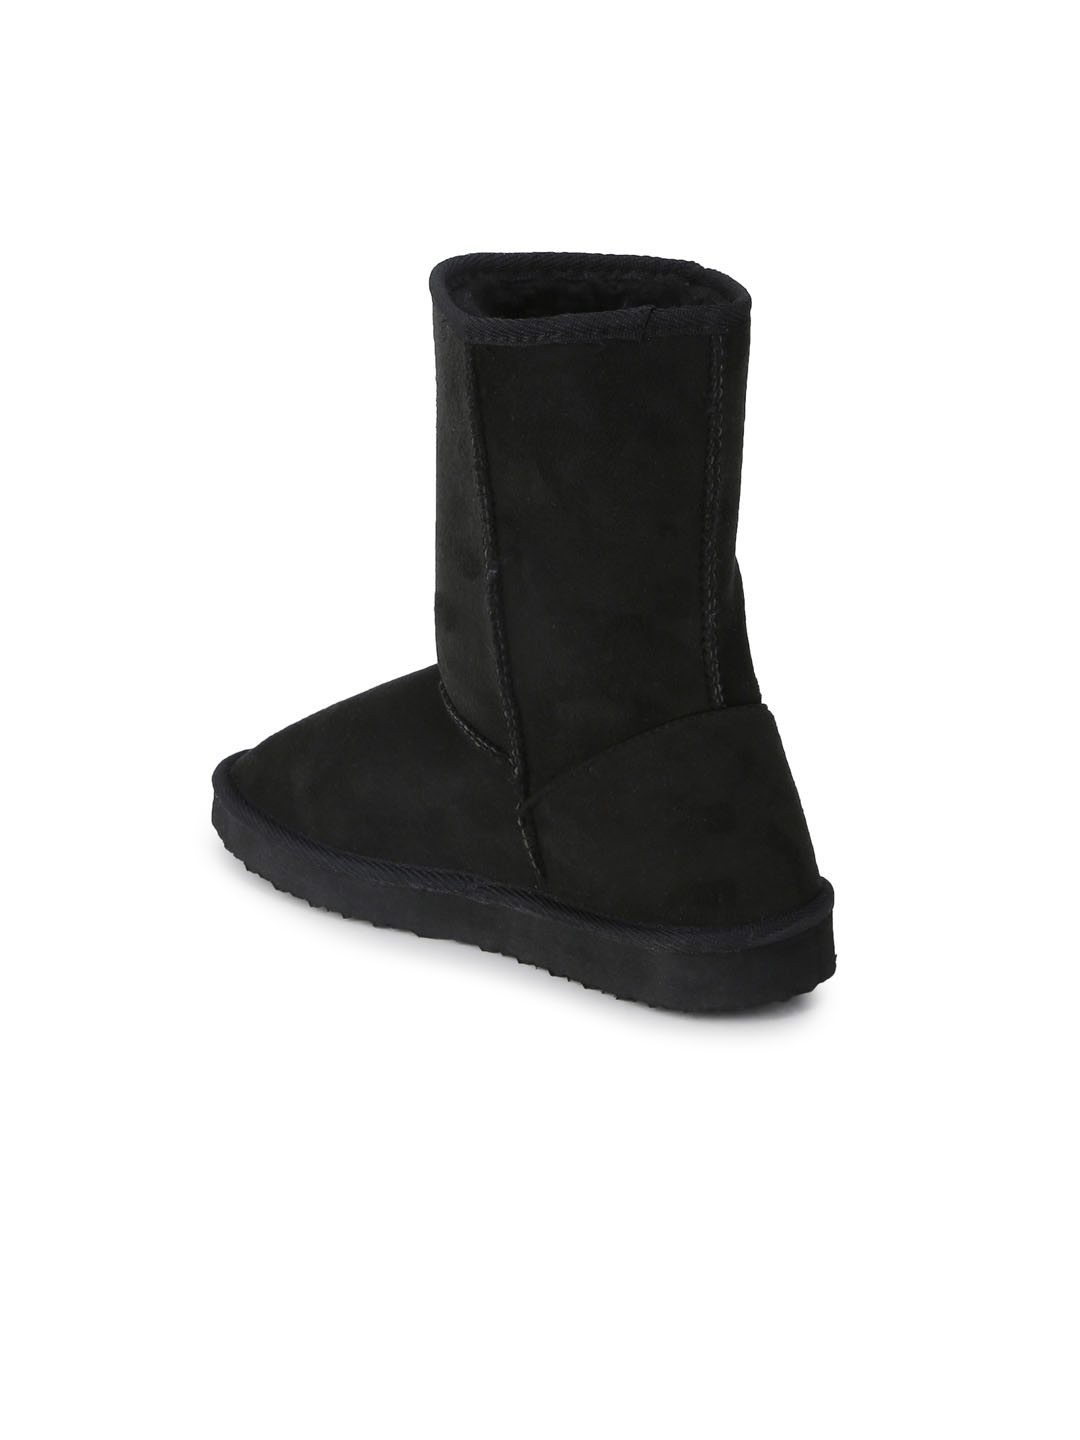 0cd69d94b66 Buy Truffle Collection Women Black Solid Heeled Boots - Heels for ...